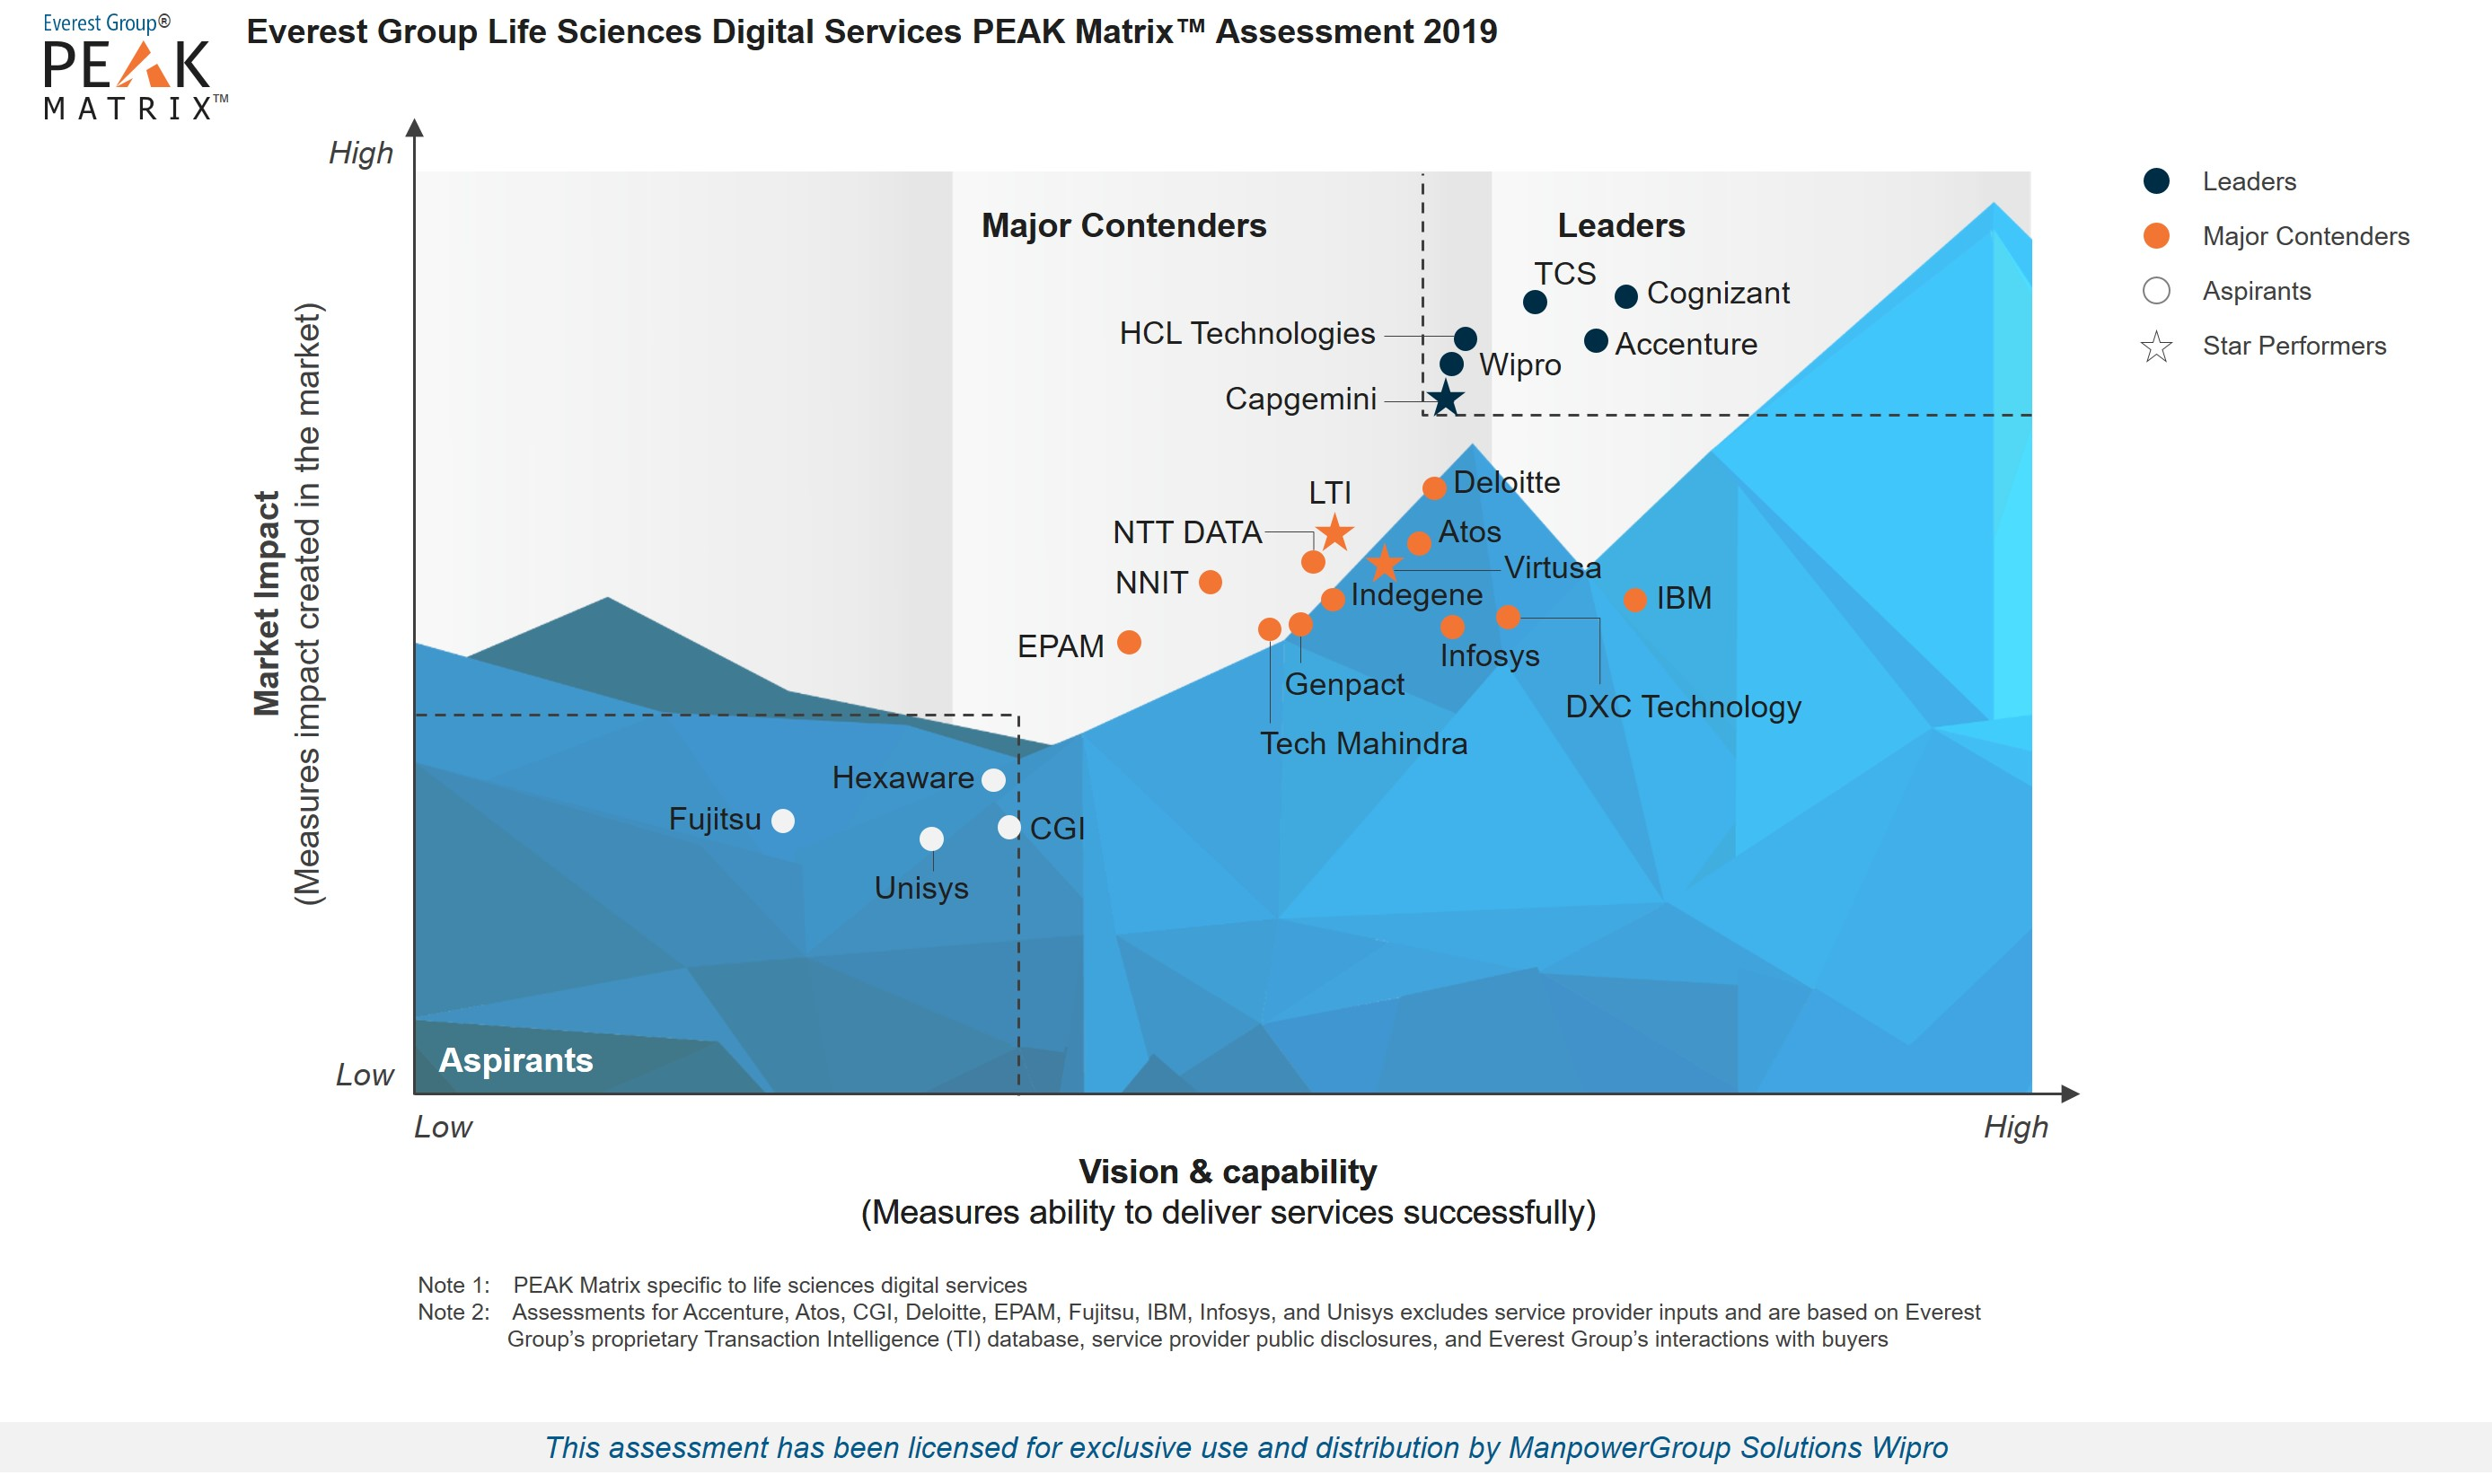 Wipro positioned as a Leader in Life Sciences Digital Services PEAK MatrixTM Assessment 2019